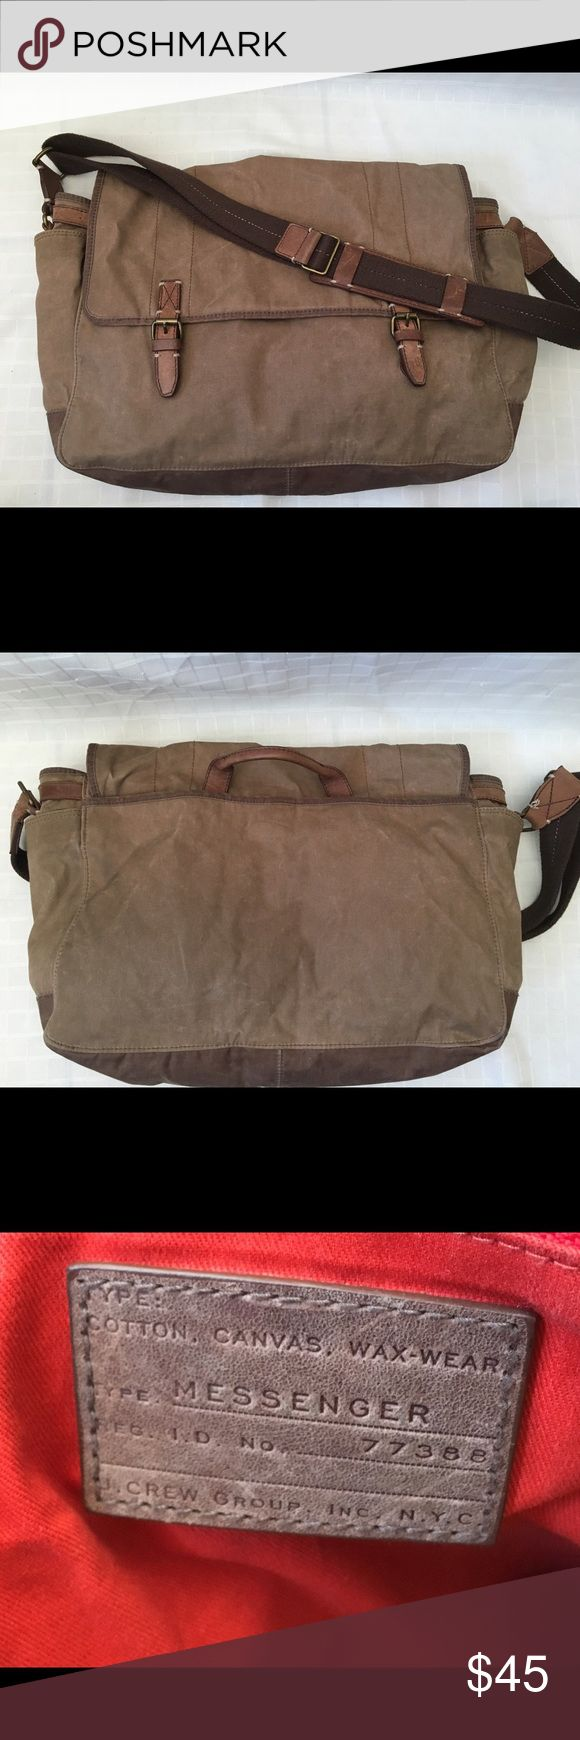 Wax Canvas Messenger bag Some discoloration, great bag for school. Very durable. Bags Crossbody Bags